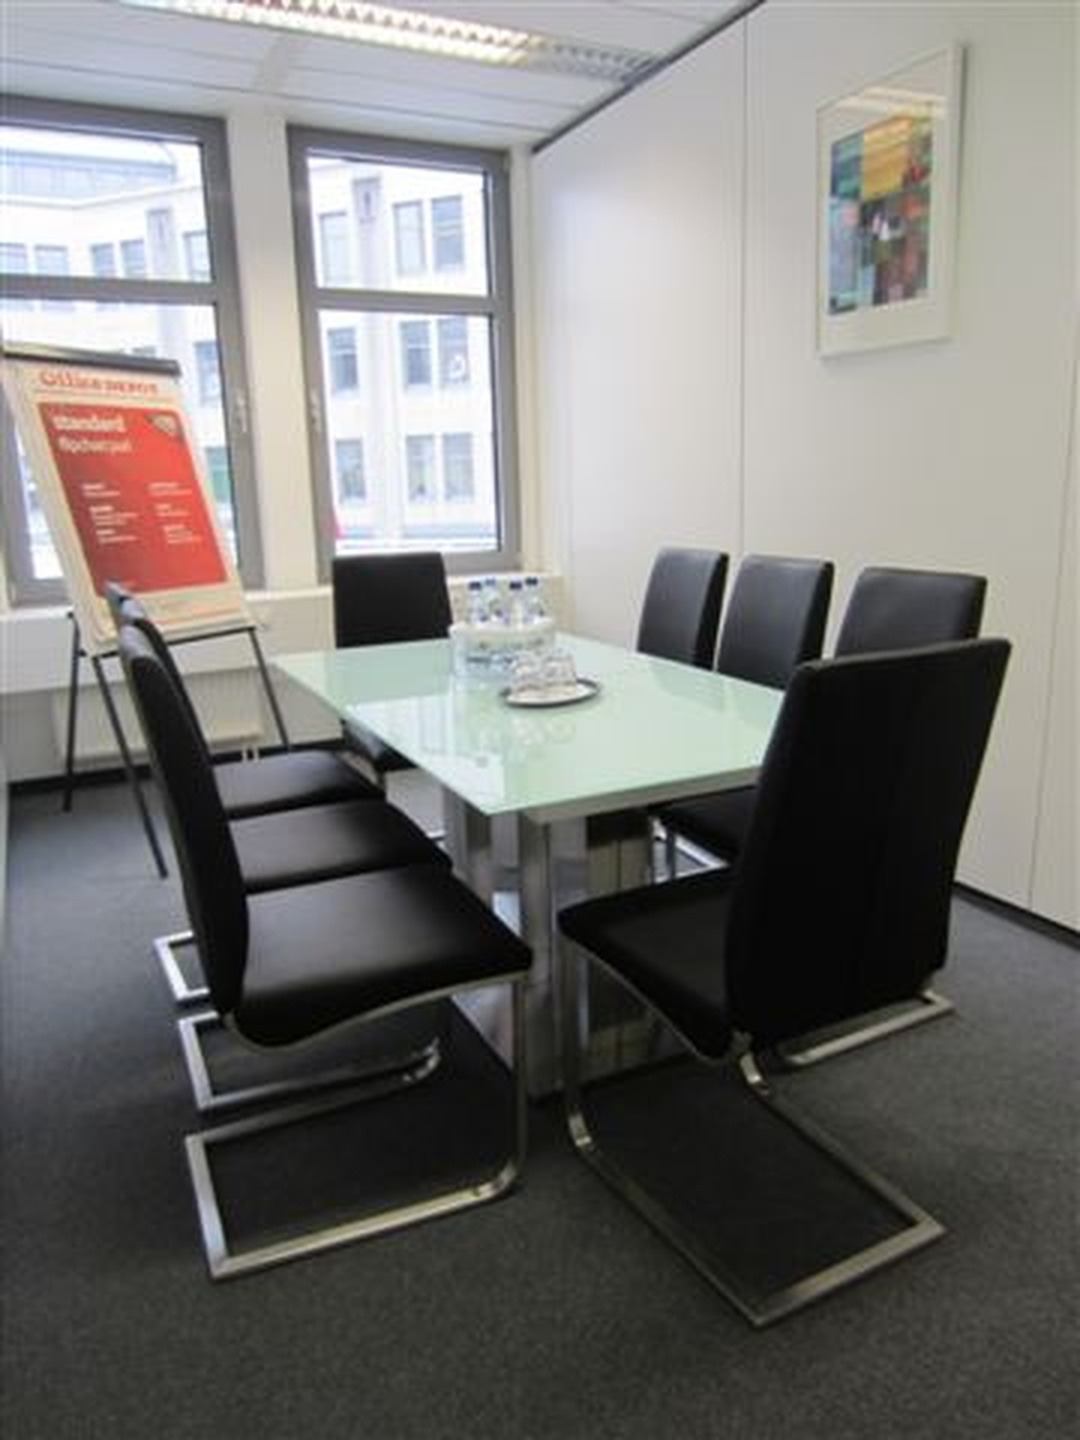 Stuttgart conference rooms Meetingraum Business Center Airport Aero image 1